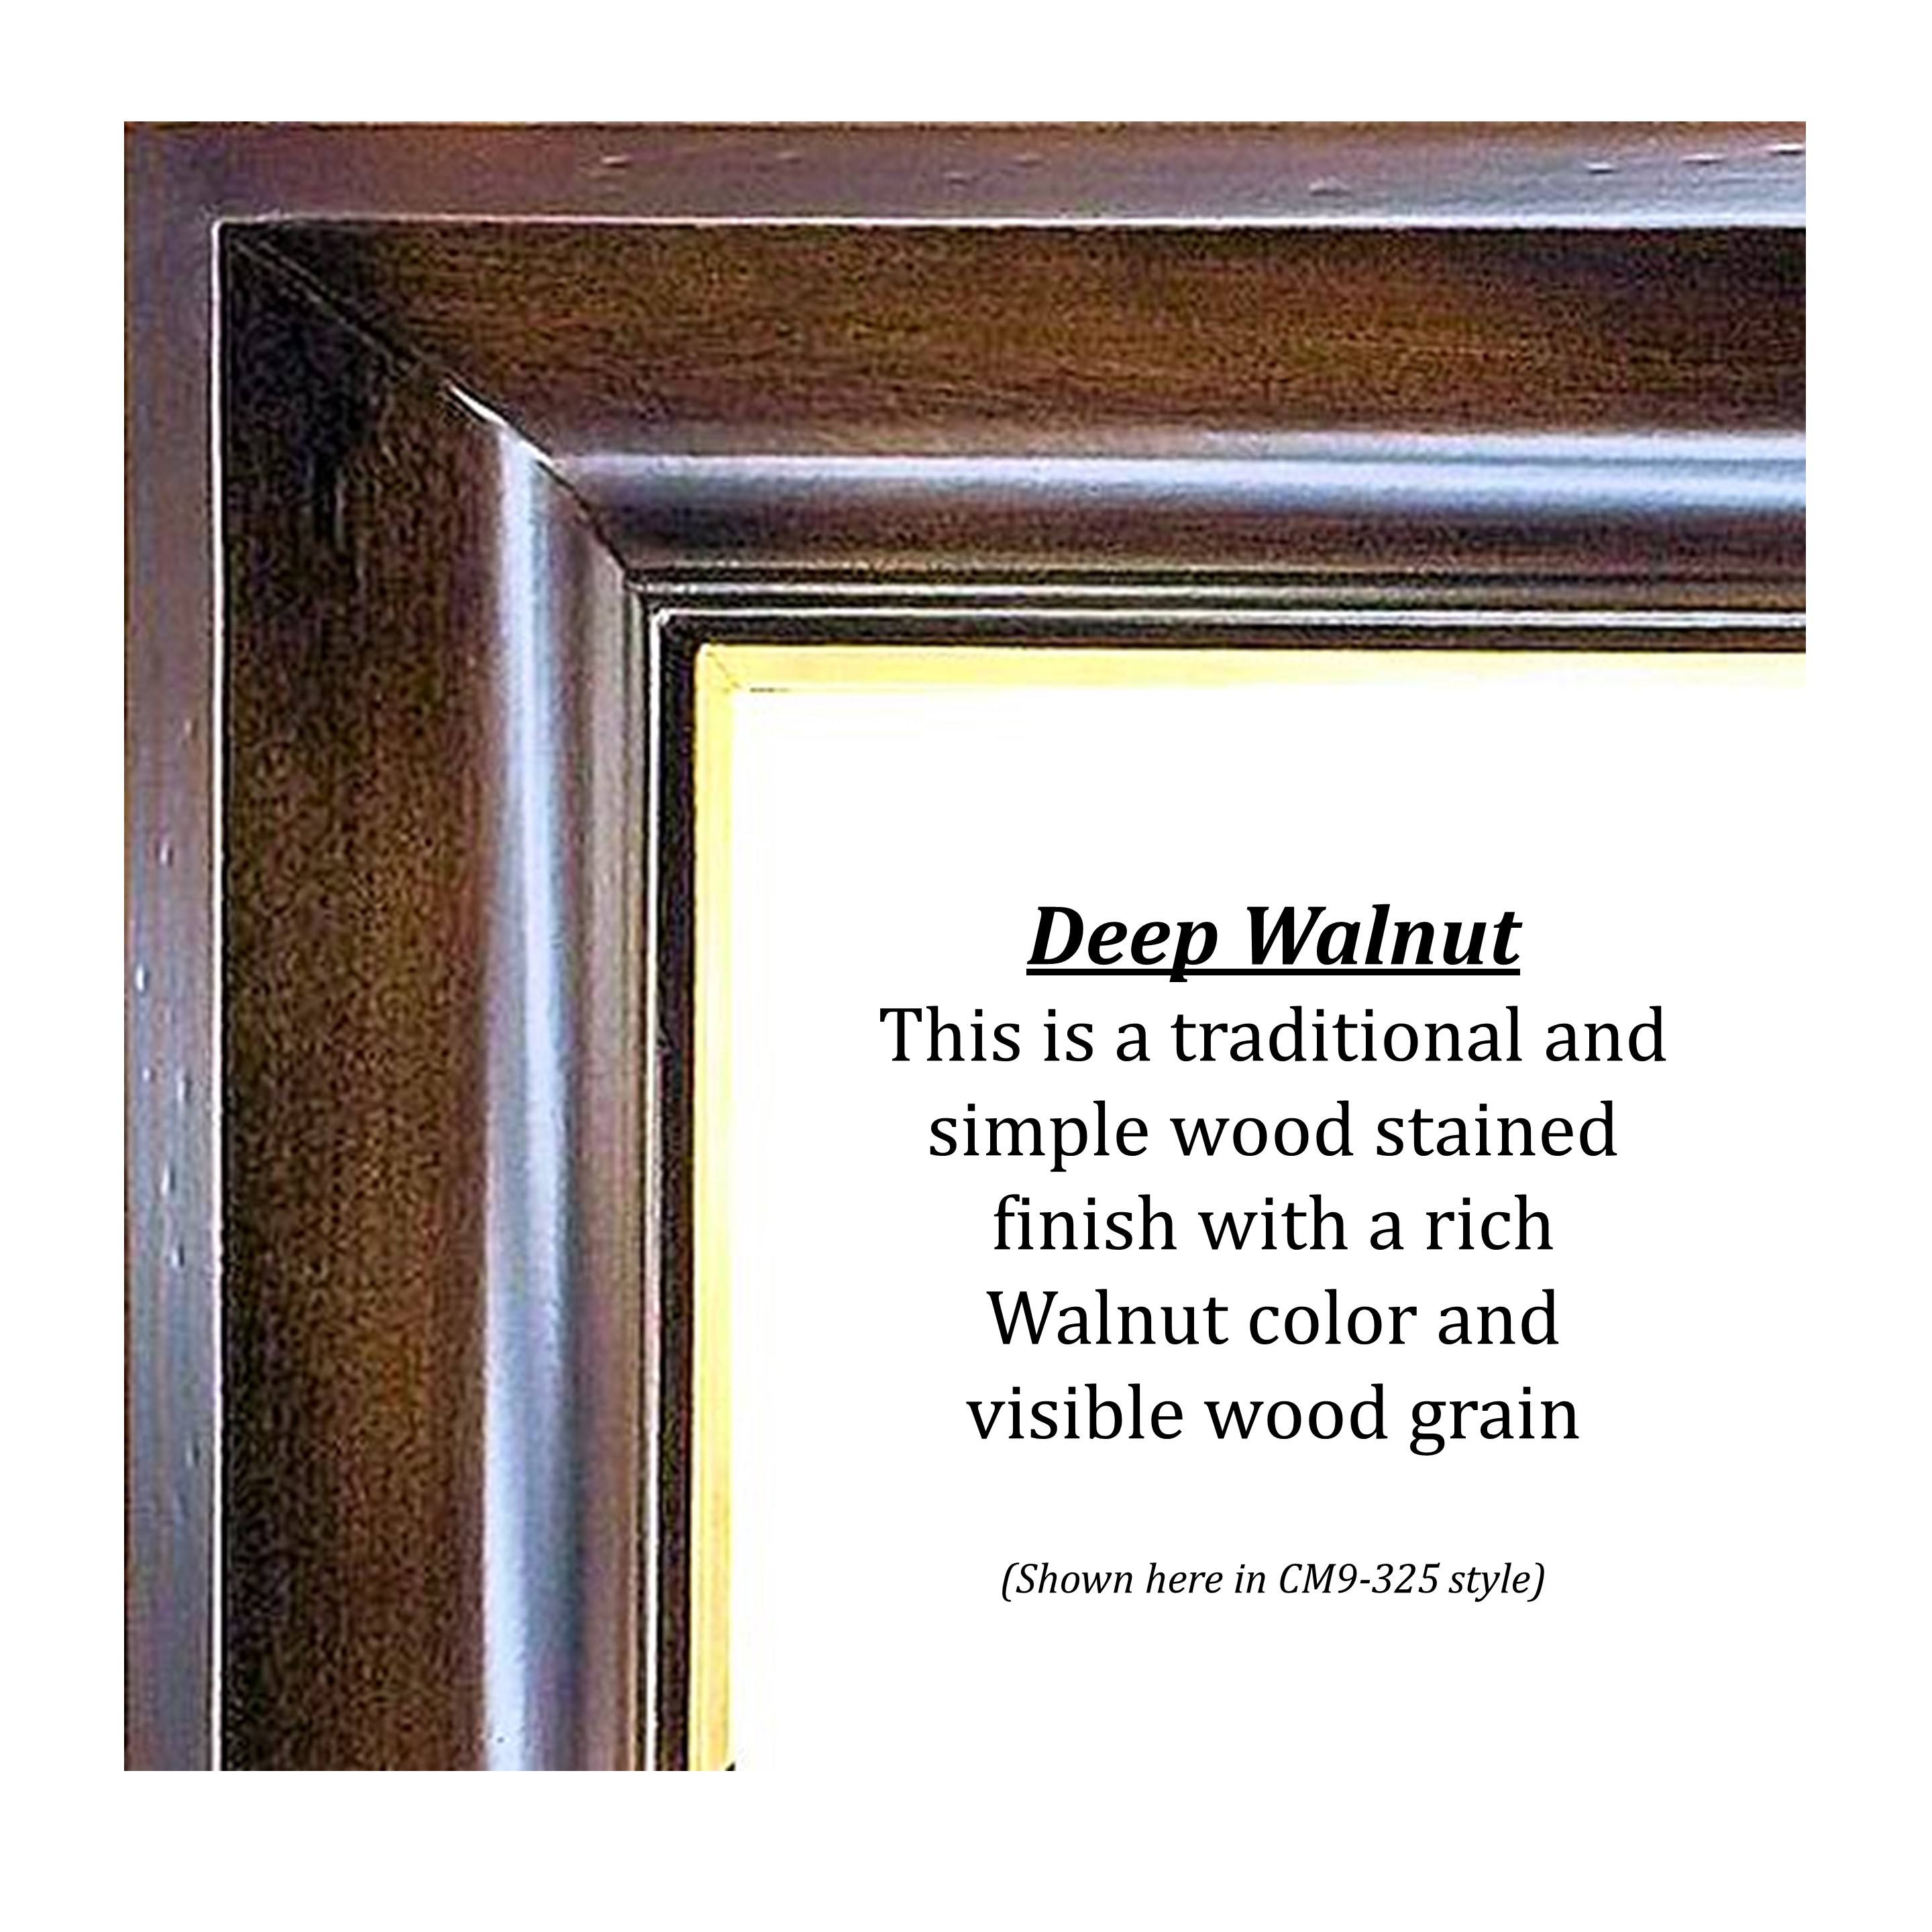 Deep Walnut